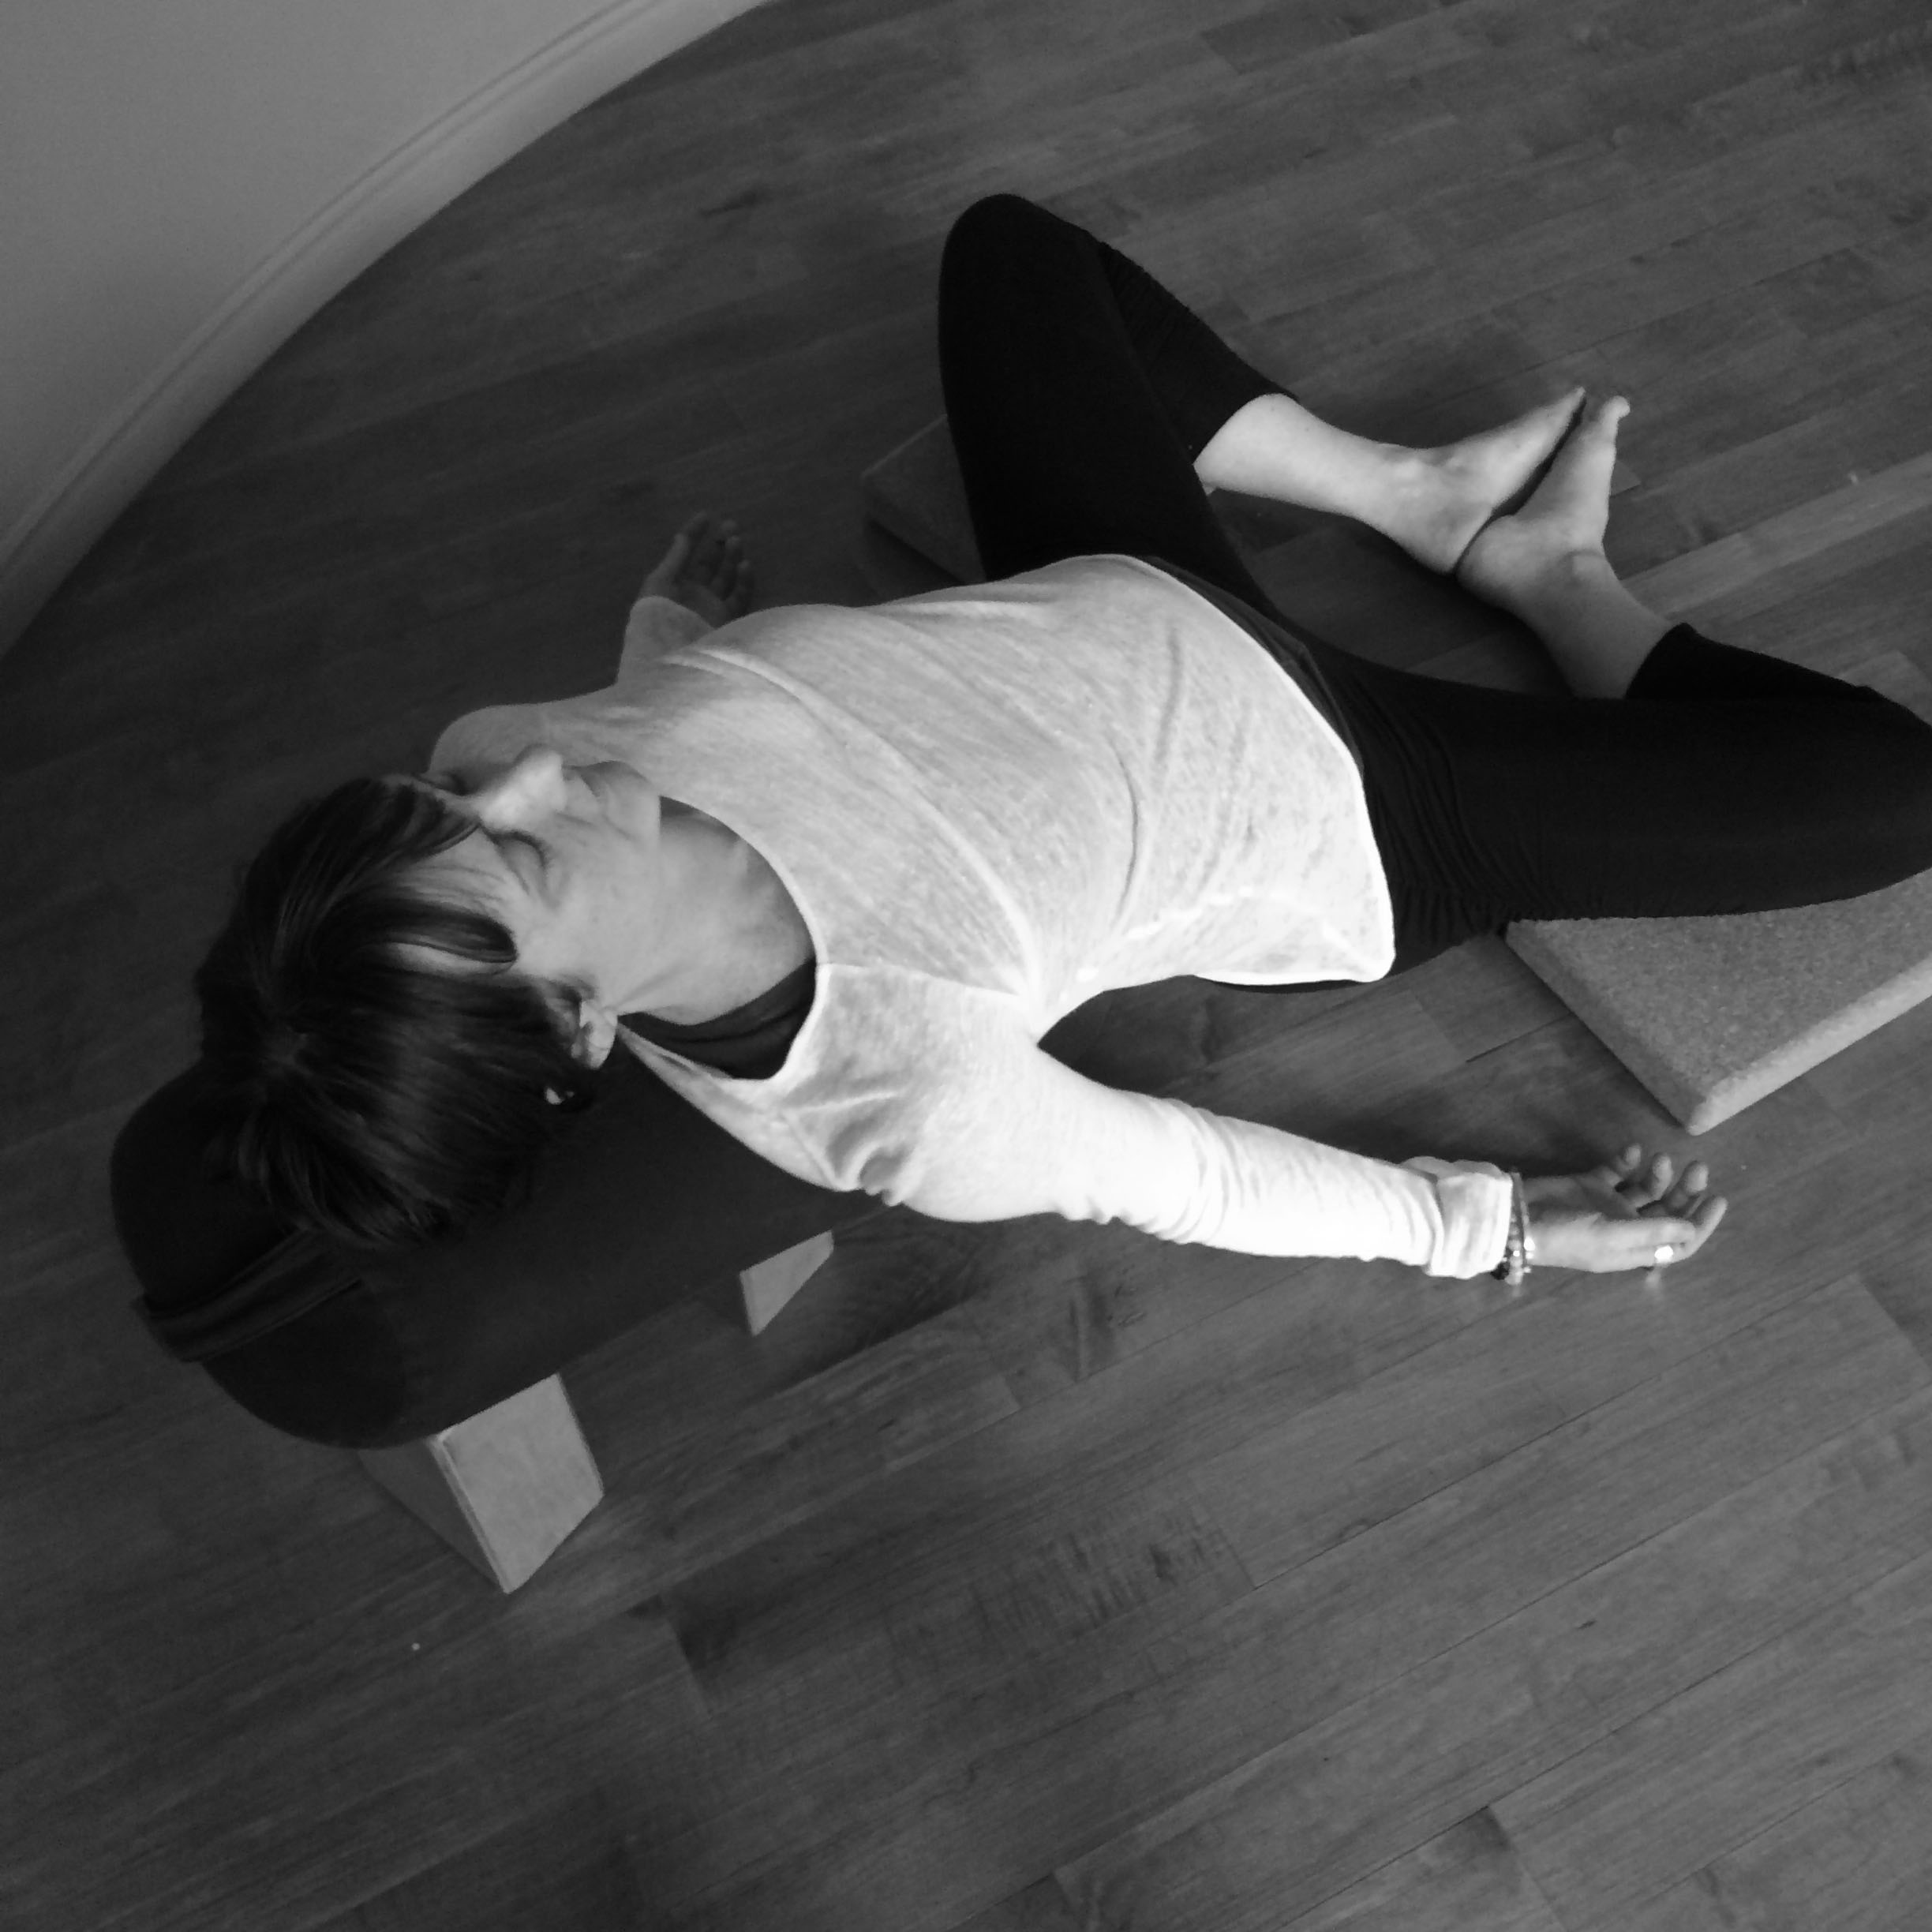 Yin Yoga Sounding Class - Tuesday Evenings from 6:45 pm – 8 pm Starting August 20th Book your spot online https://cedarhealingarts.janeapp.com/#/staff_member/1/treatment/8The energy exchange for this delightful journey into body, movement and breath is $18 a class or $75 for a 5 class pass.Must pre-register for classes 24hrs before.Yin yoga is a slow paced practice, with postures that are held for 3 -5 minutes in mostly seated or laying down positions, allowing the body to slowly release tension and penetrate the deeper connective tissues (tendons, fascia, and ligaments) as well as the energetic systems of the body, bringing the body into balance and increasing it's natural range of motion.Yin yoga improves flexibility, circulation in the joints, the flow of qi; the subtle energy that runs through the meridian pathways of the body, which in turn helps improve organ health, immunity and emotional well-being. With this practice you will feel refreshed, renewed and restored.Each practice will be followed by a savasana (laying down with eyes relaxed and closed) while enjoying the healing vibrations of the crystal singing bowls.